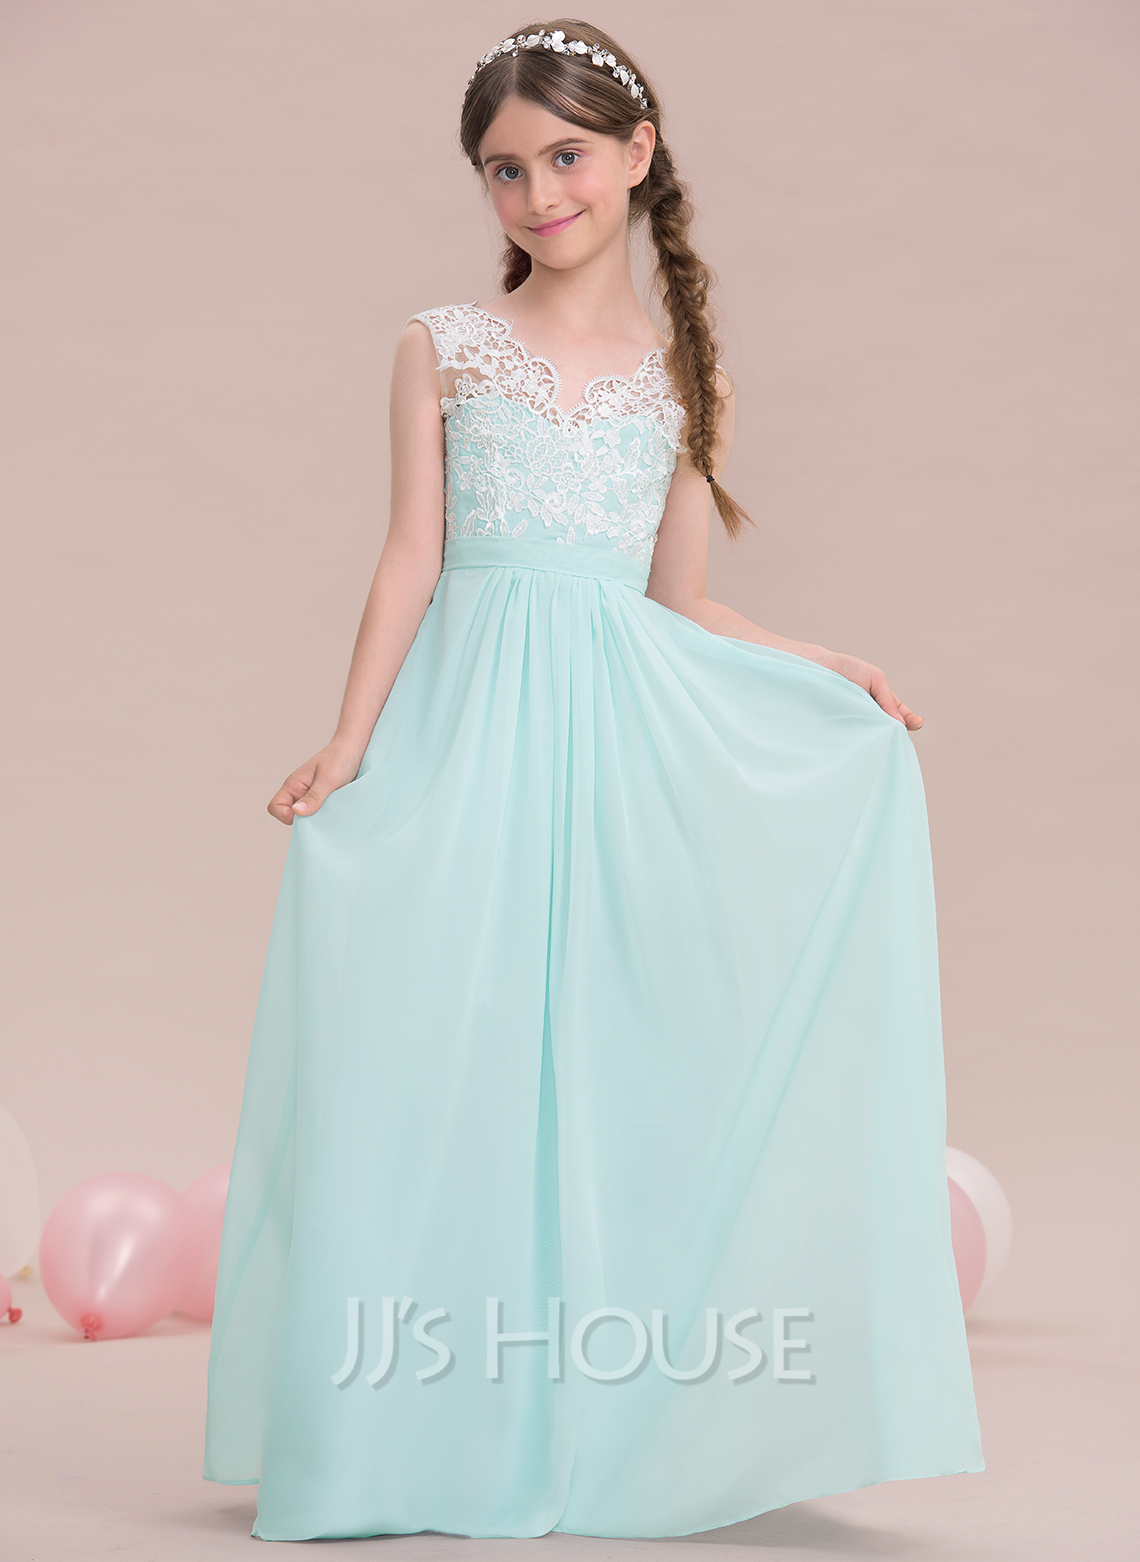 4301aab672d6 A-Line V-neck Floor-Length Chiffon Junior Bridesmaid Dress. Loading zoom